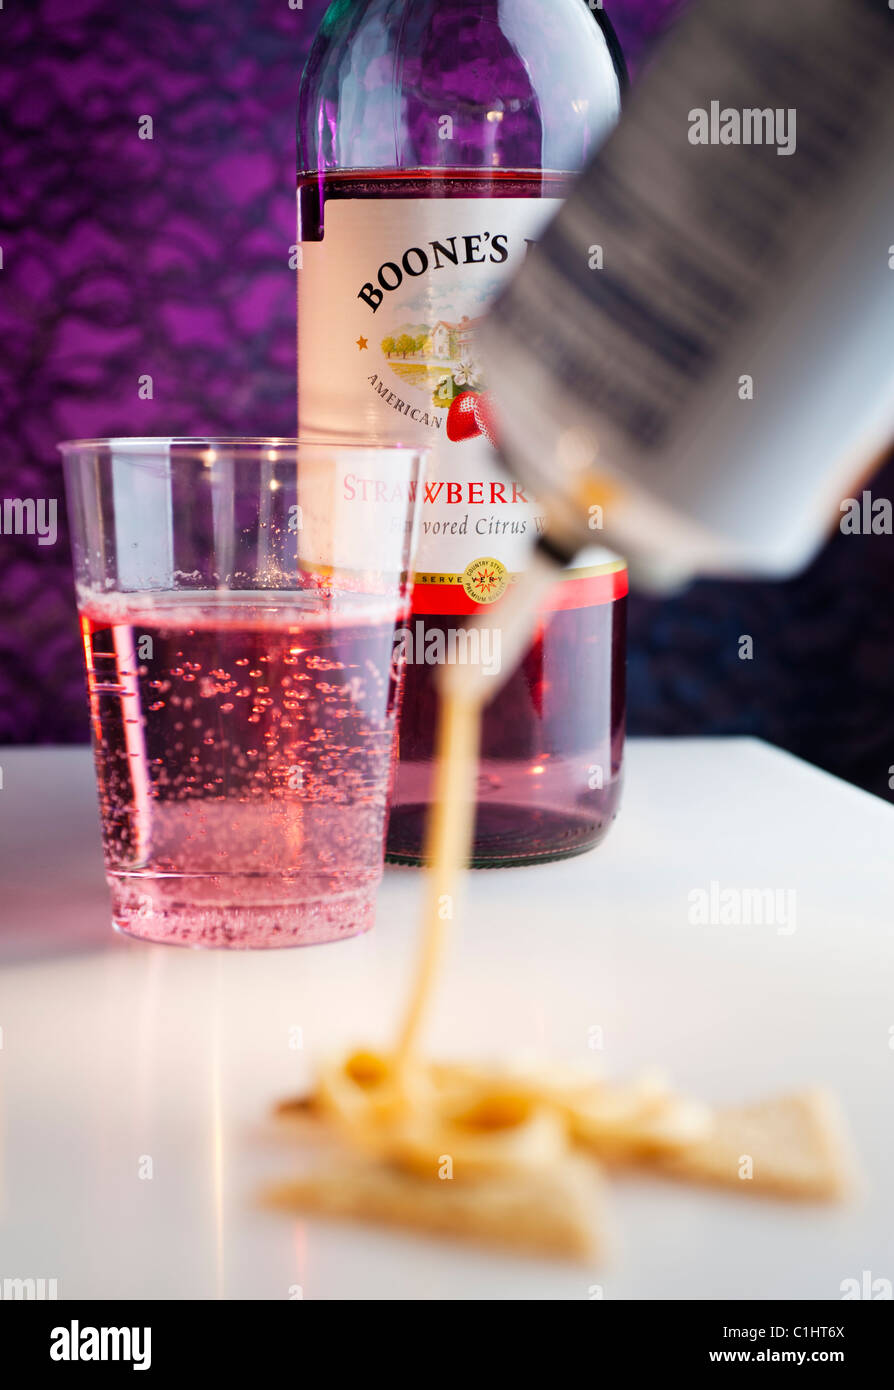 Cheap wine and canned spray cheese. - Stock Image